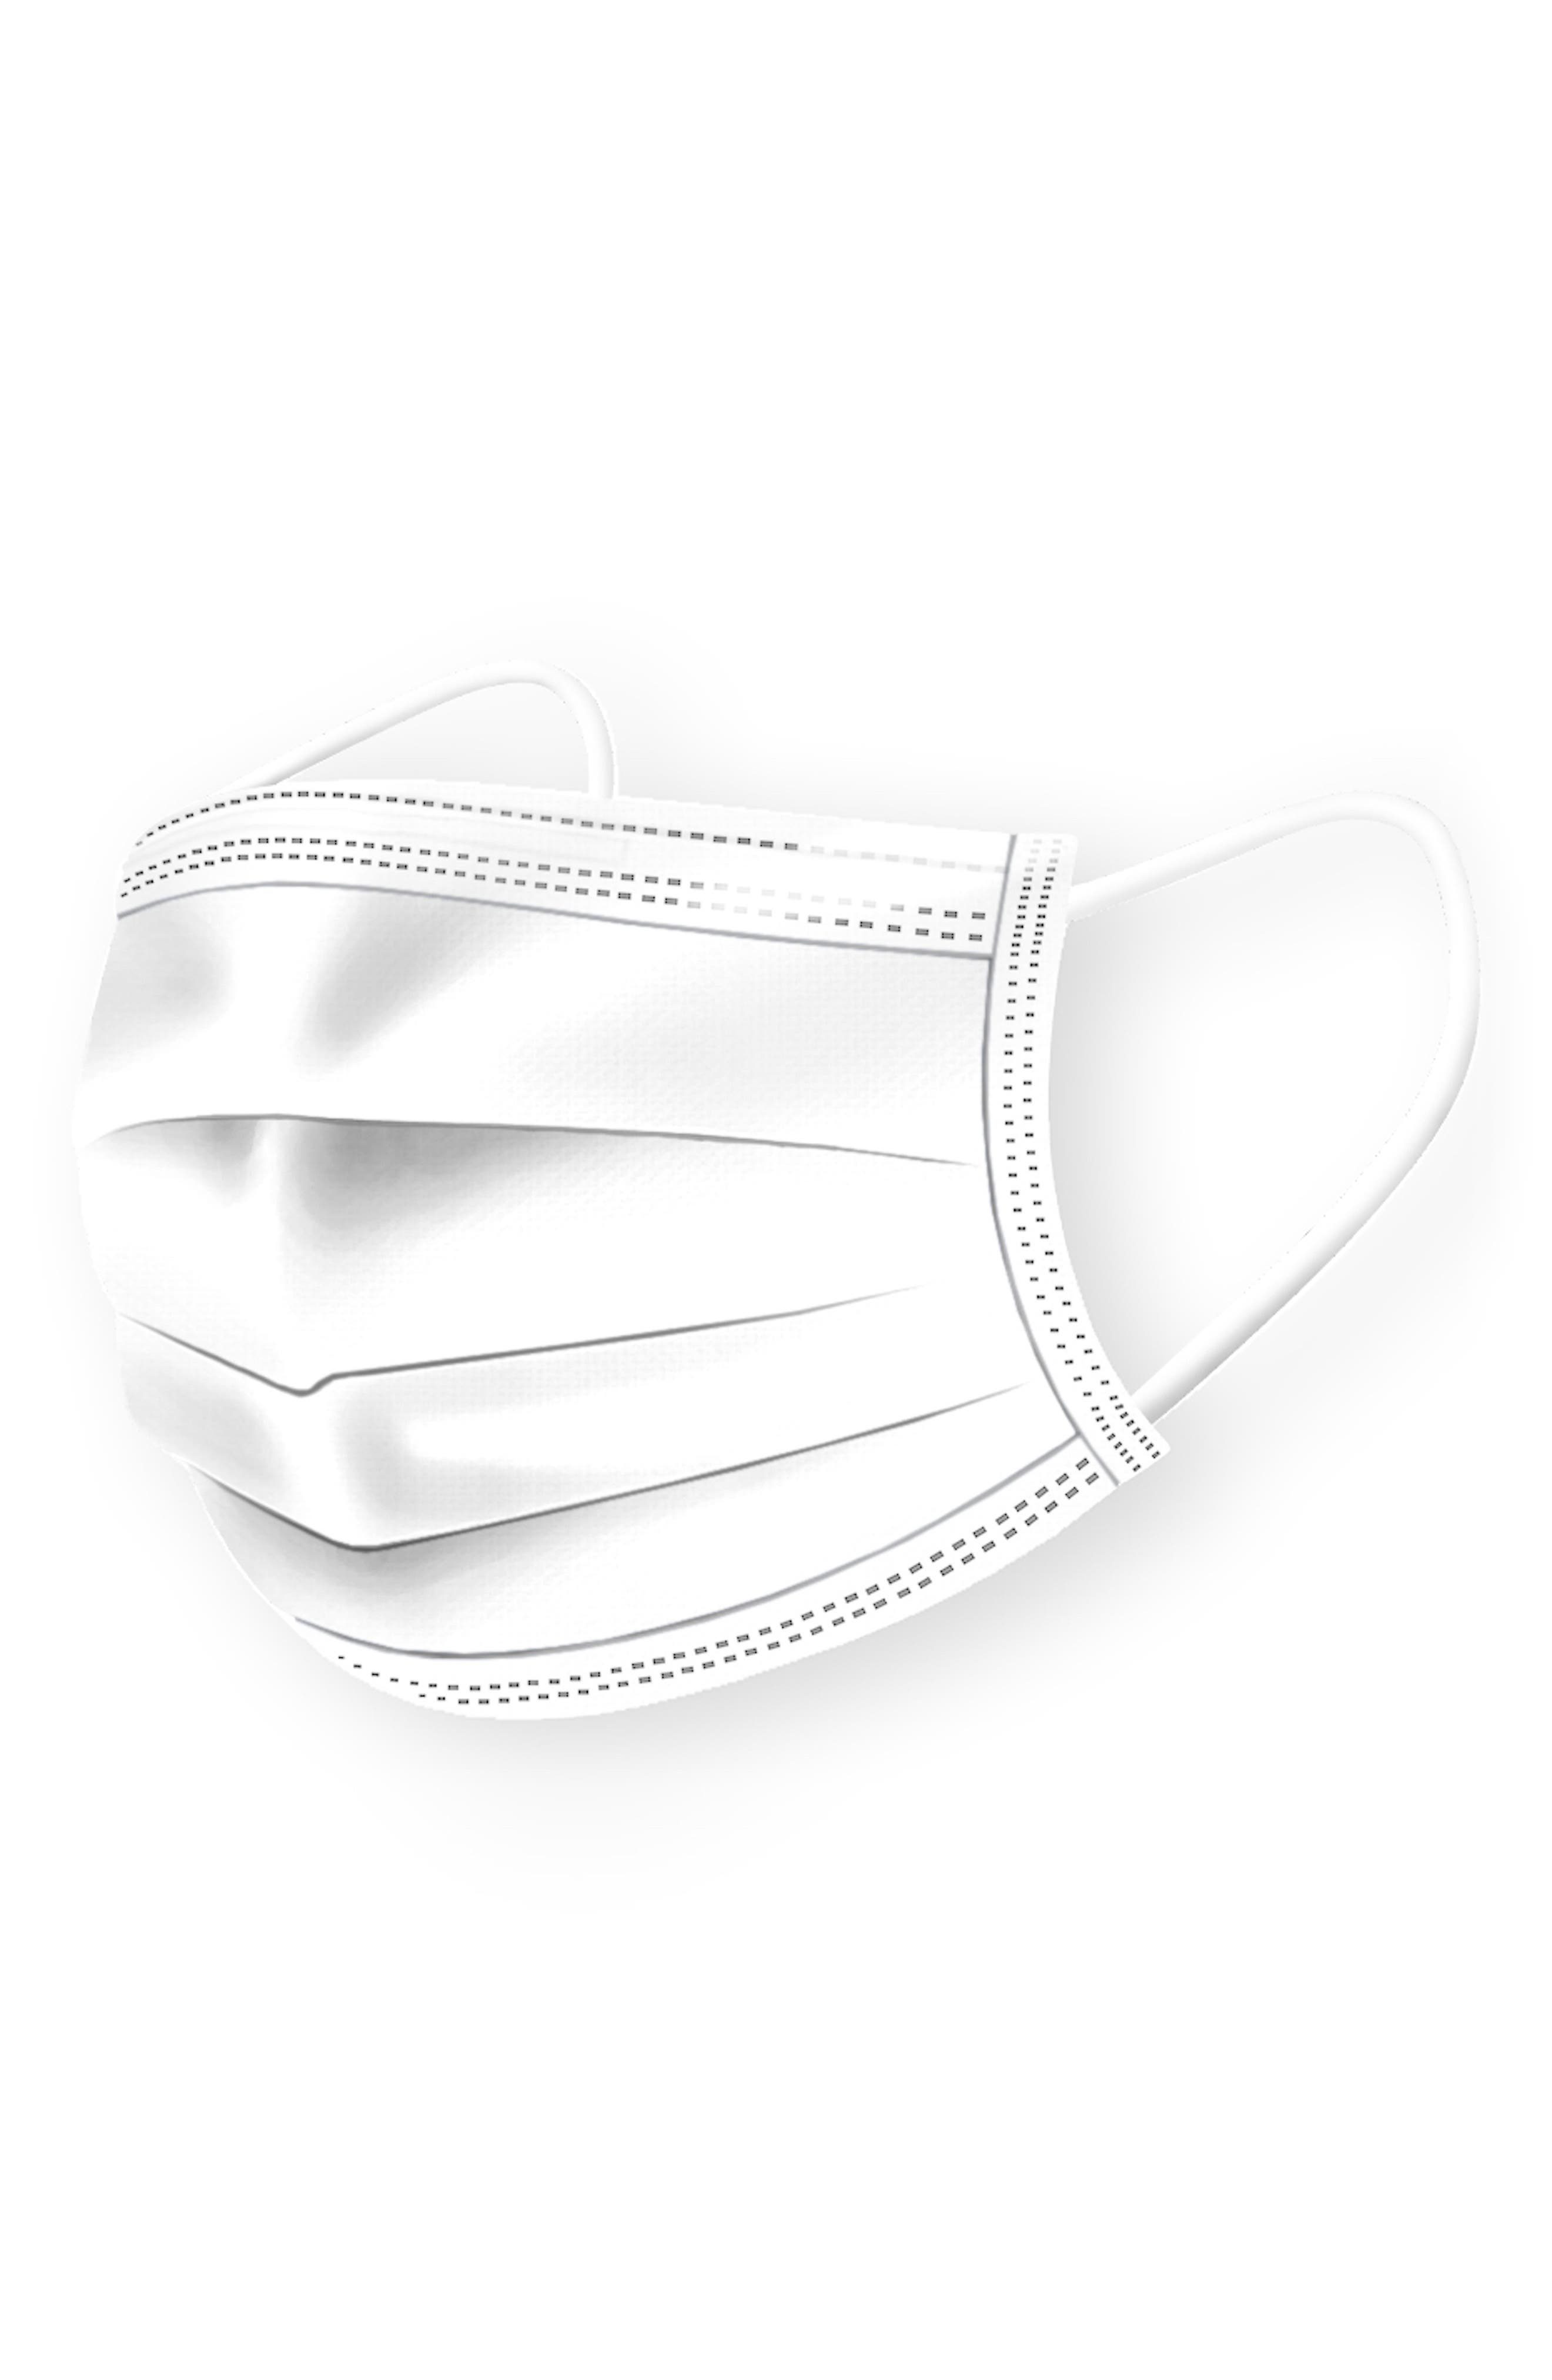 Image of MEDIPOP 5-Pack Adult Disposable Pleated Face Masks